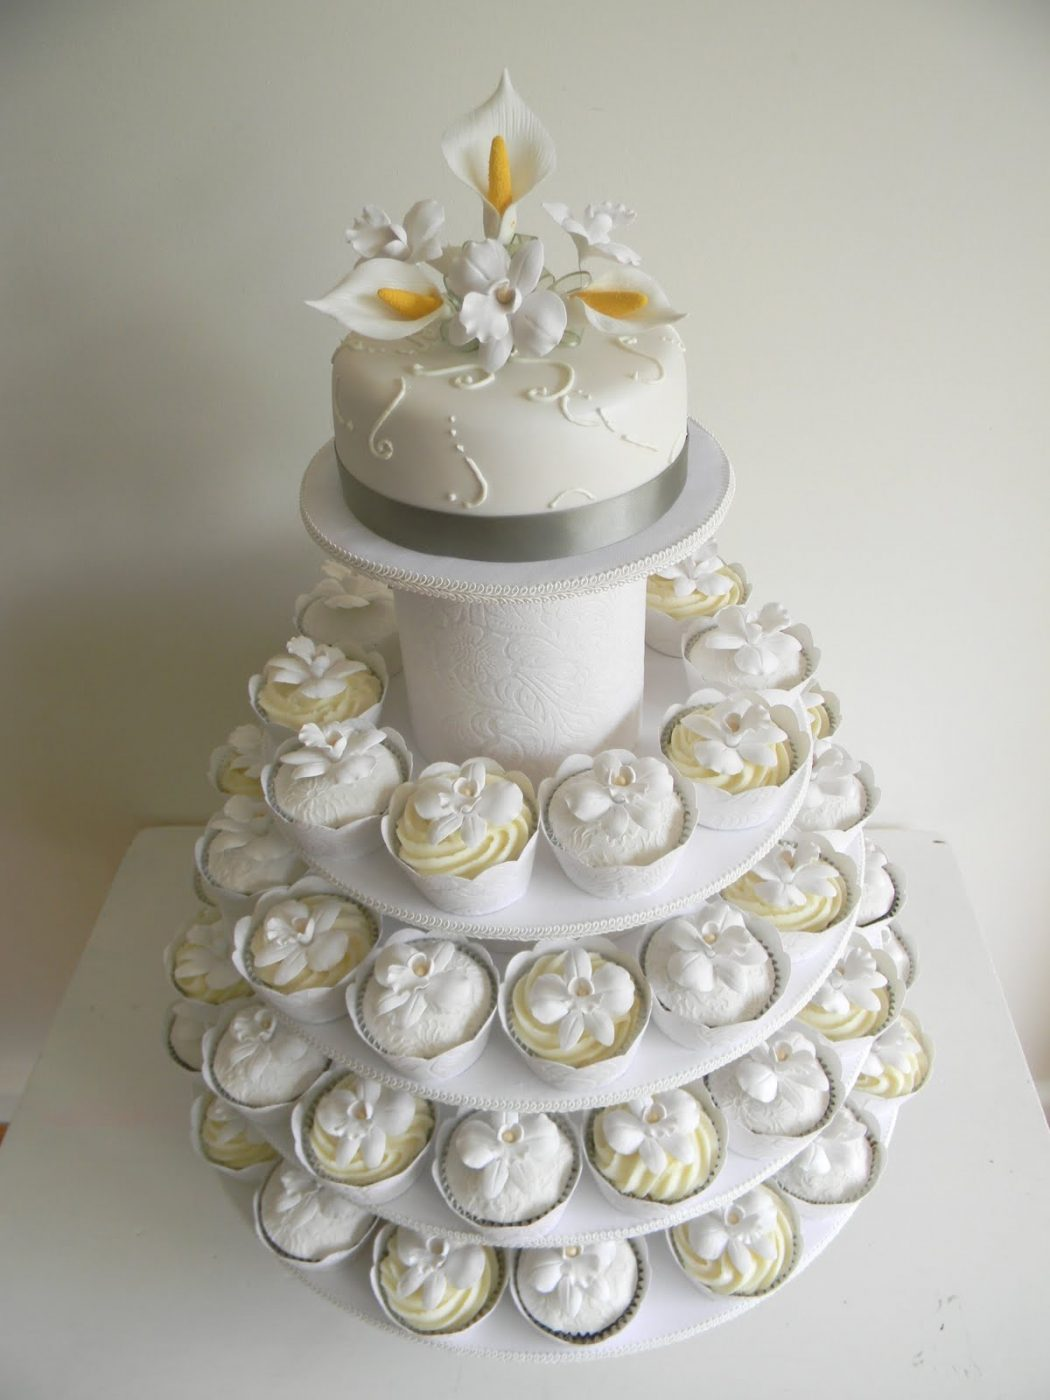 wedding-cake Cupcakes Are So Easy To Be Made At Home